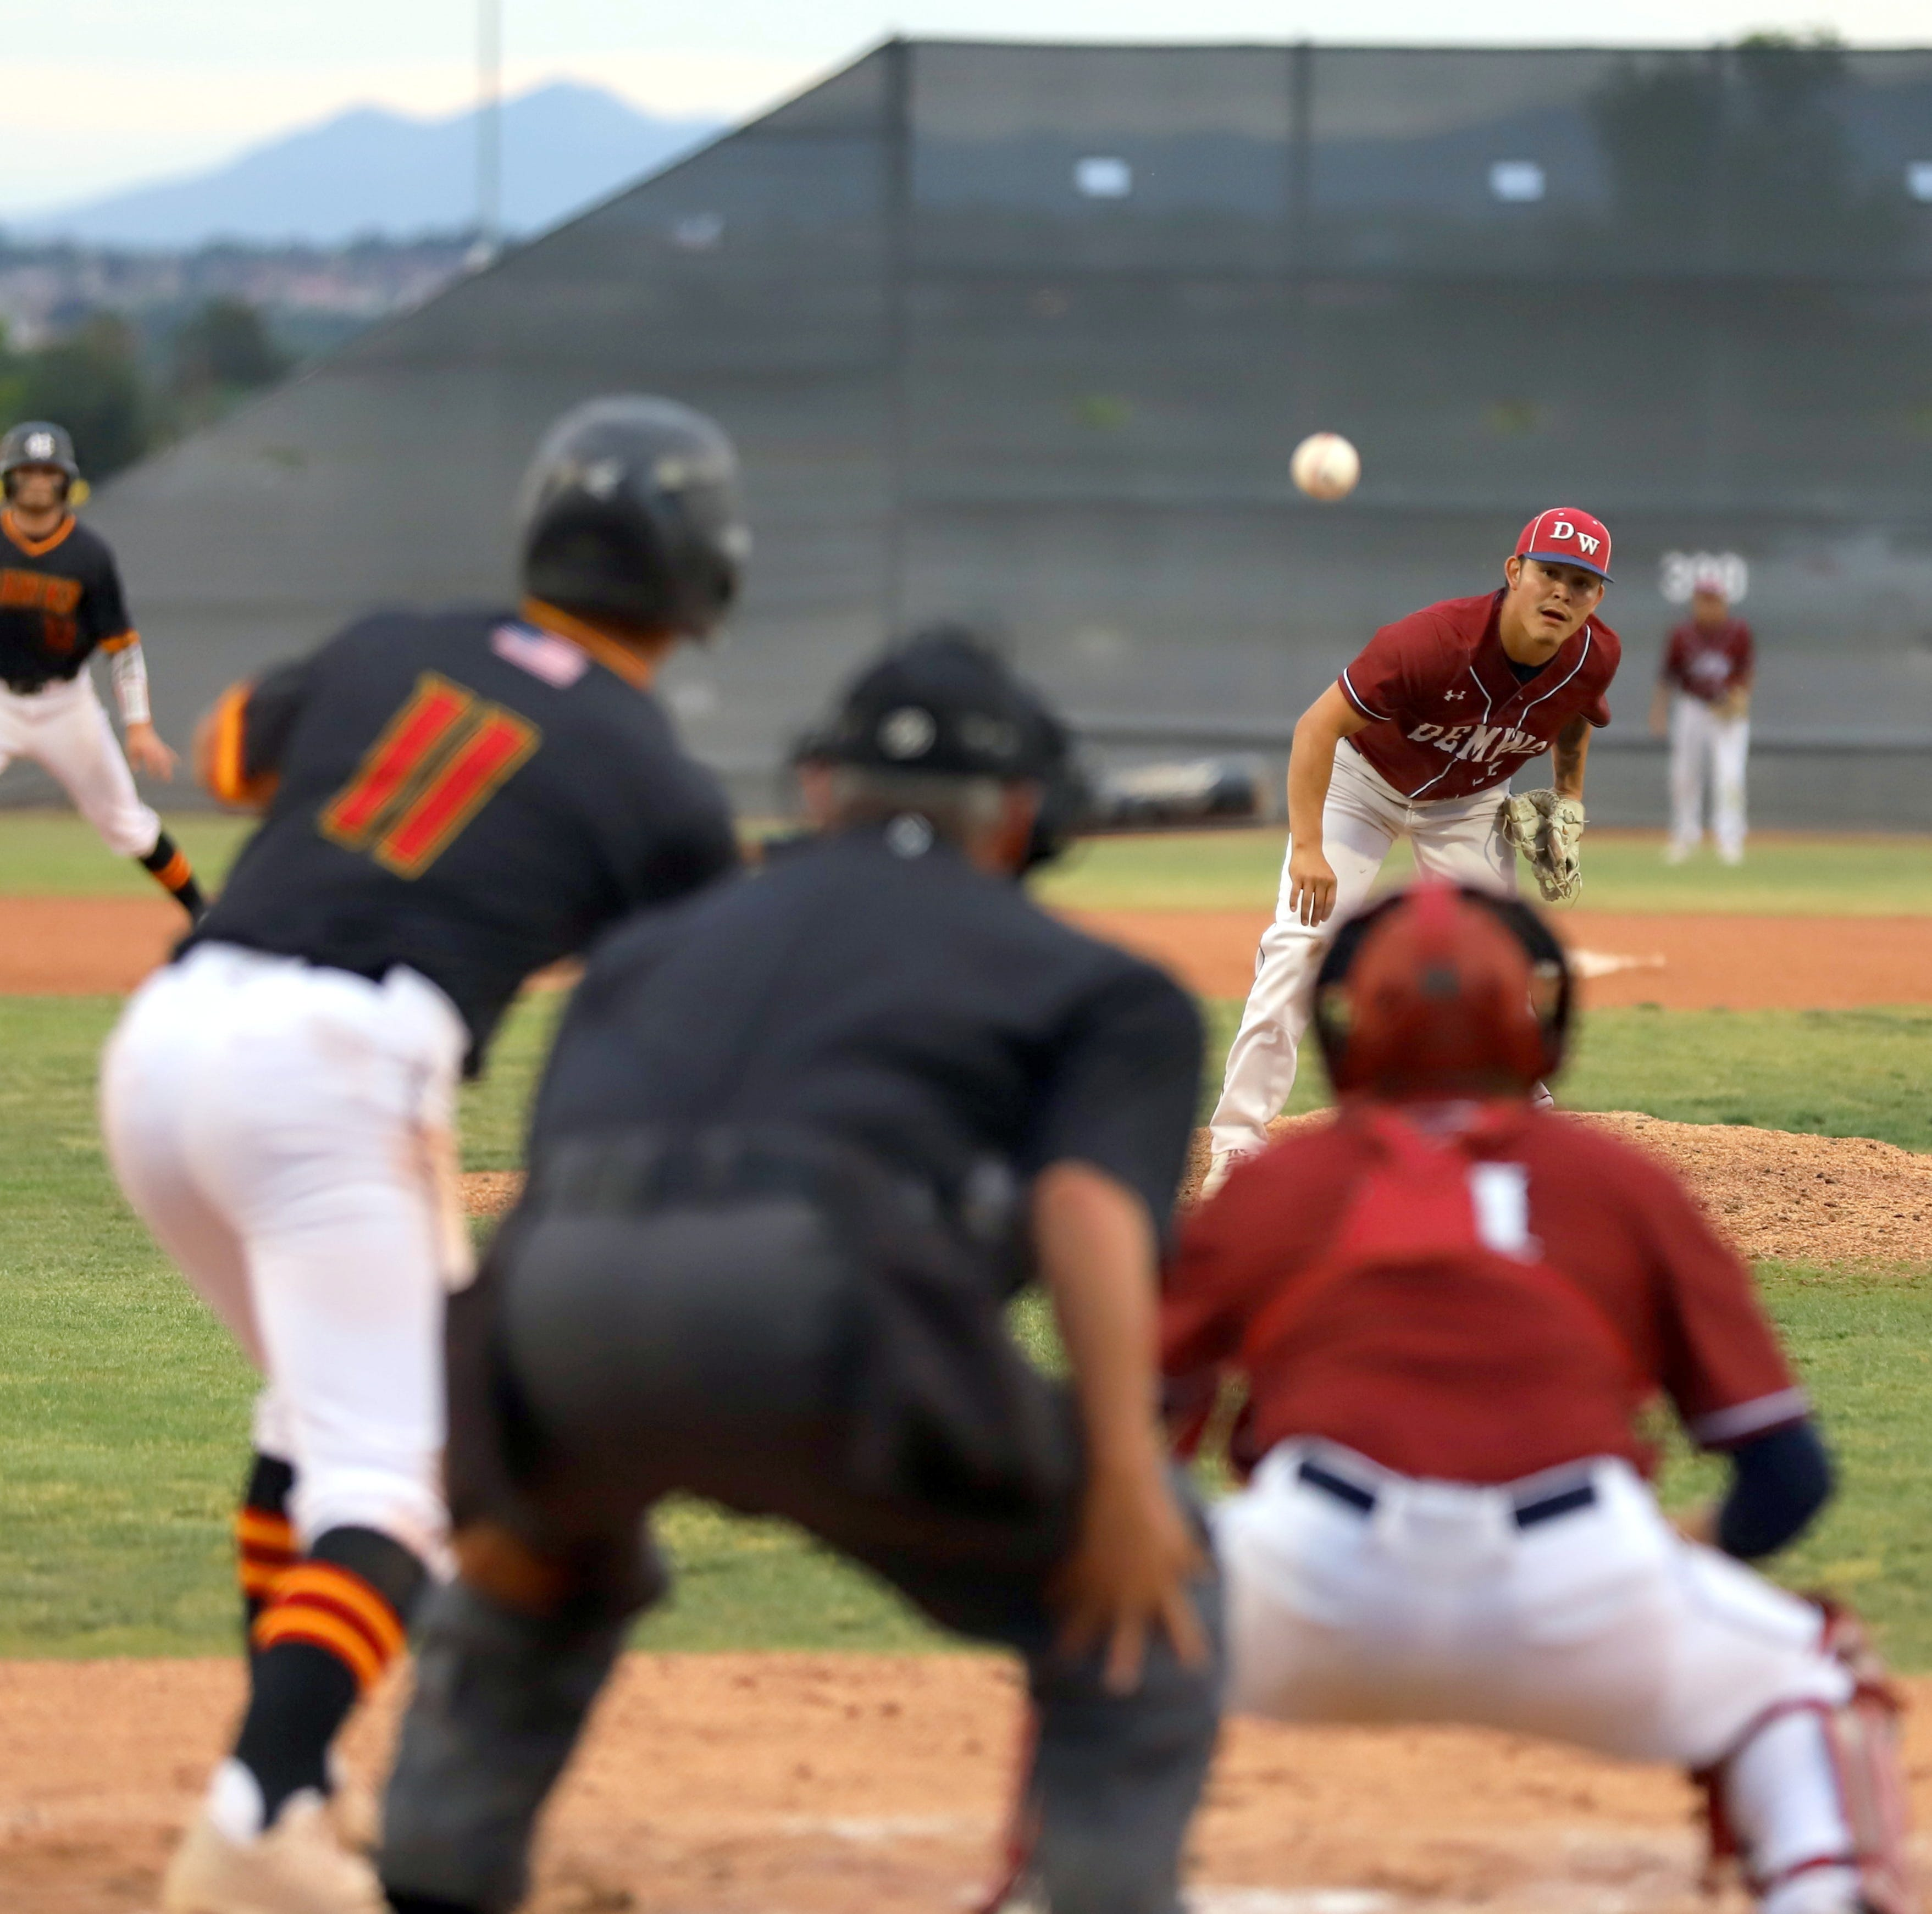 Deming High Wildcats lost 10-0 to Centennial Hawks in opening game of Class 5A playoffs